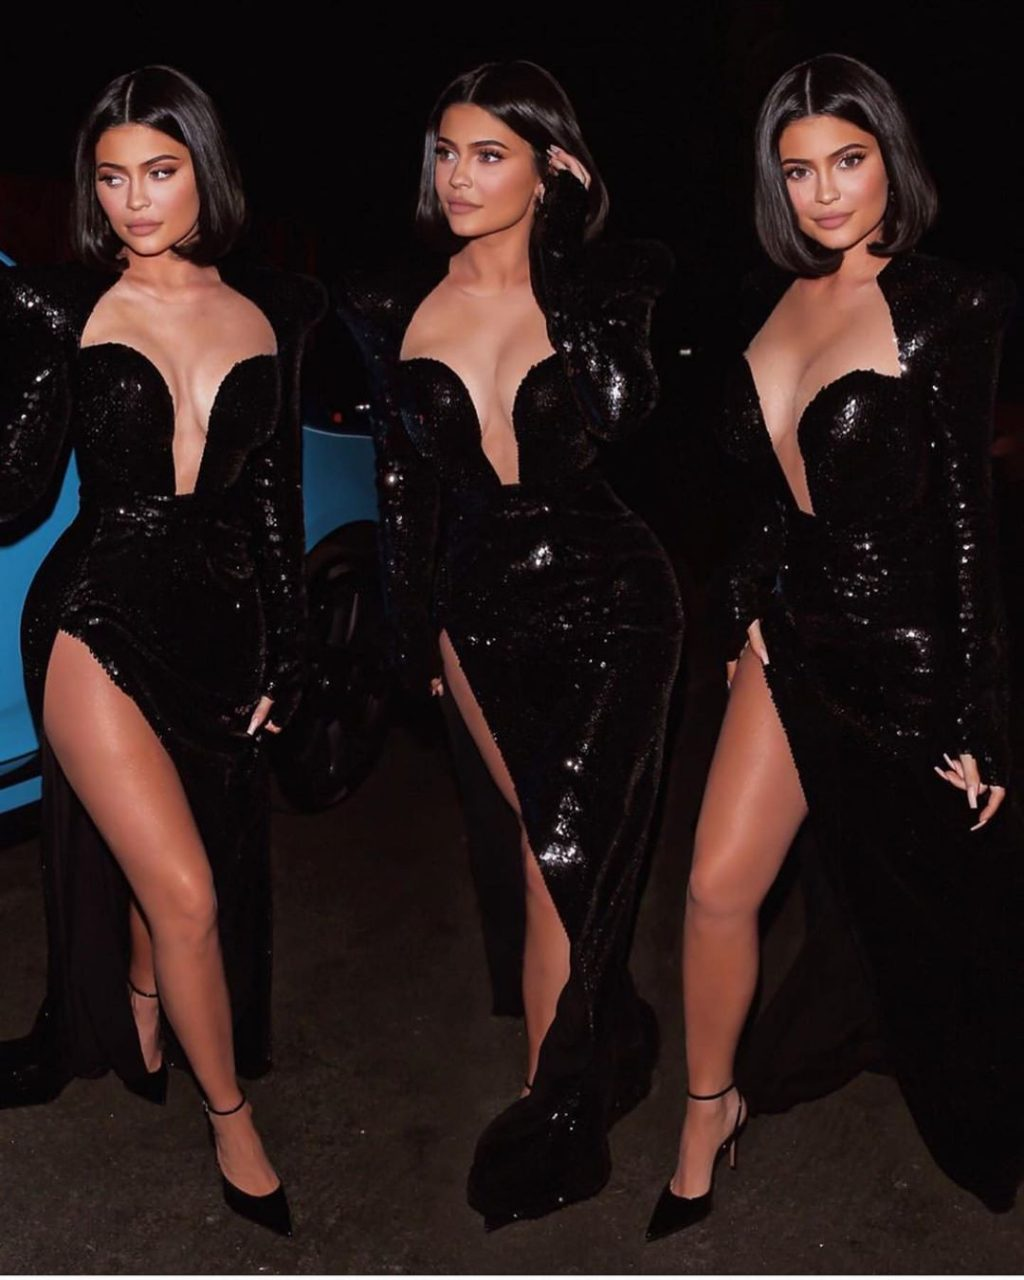 Kylie Jenner Sexy (14 Photos + Video)